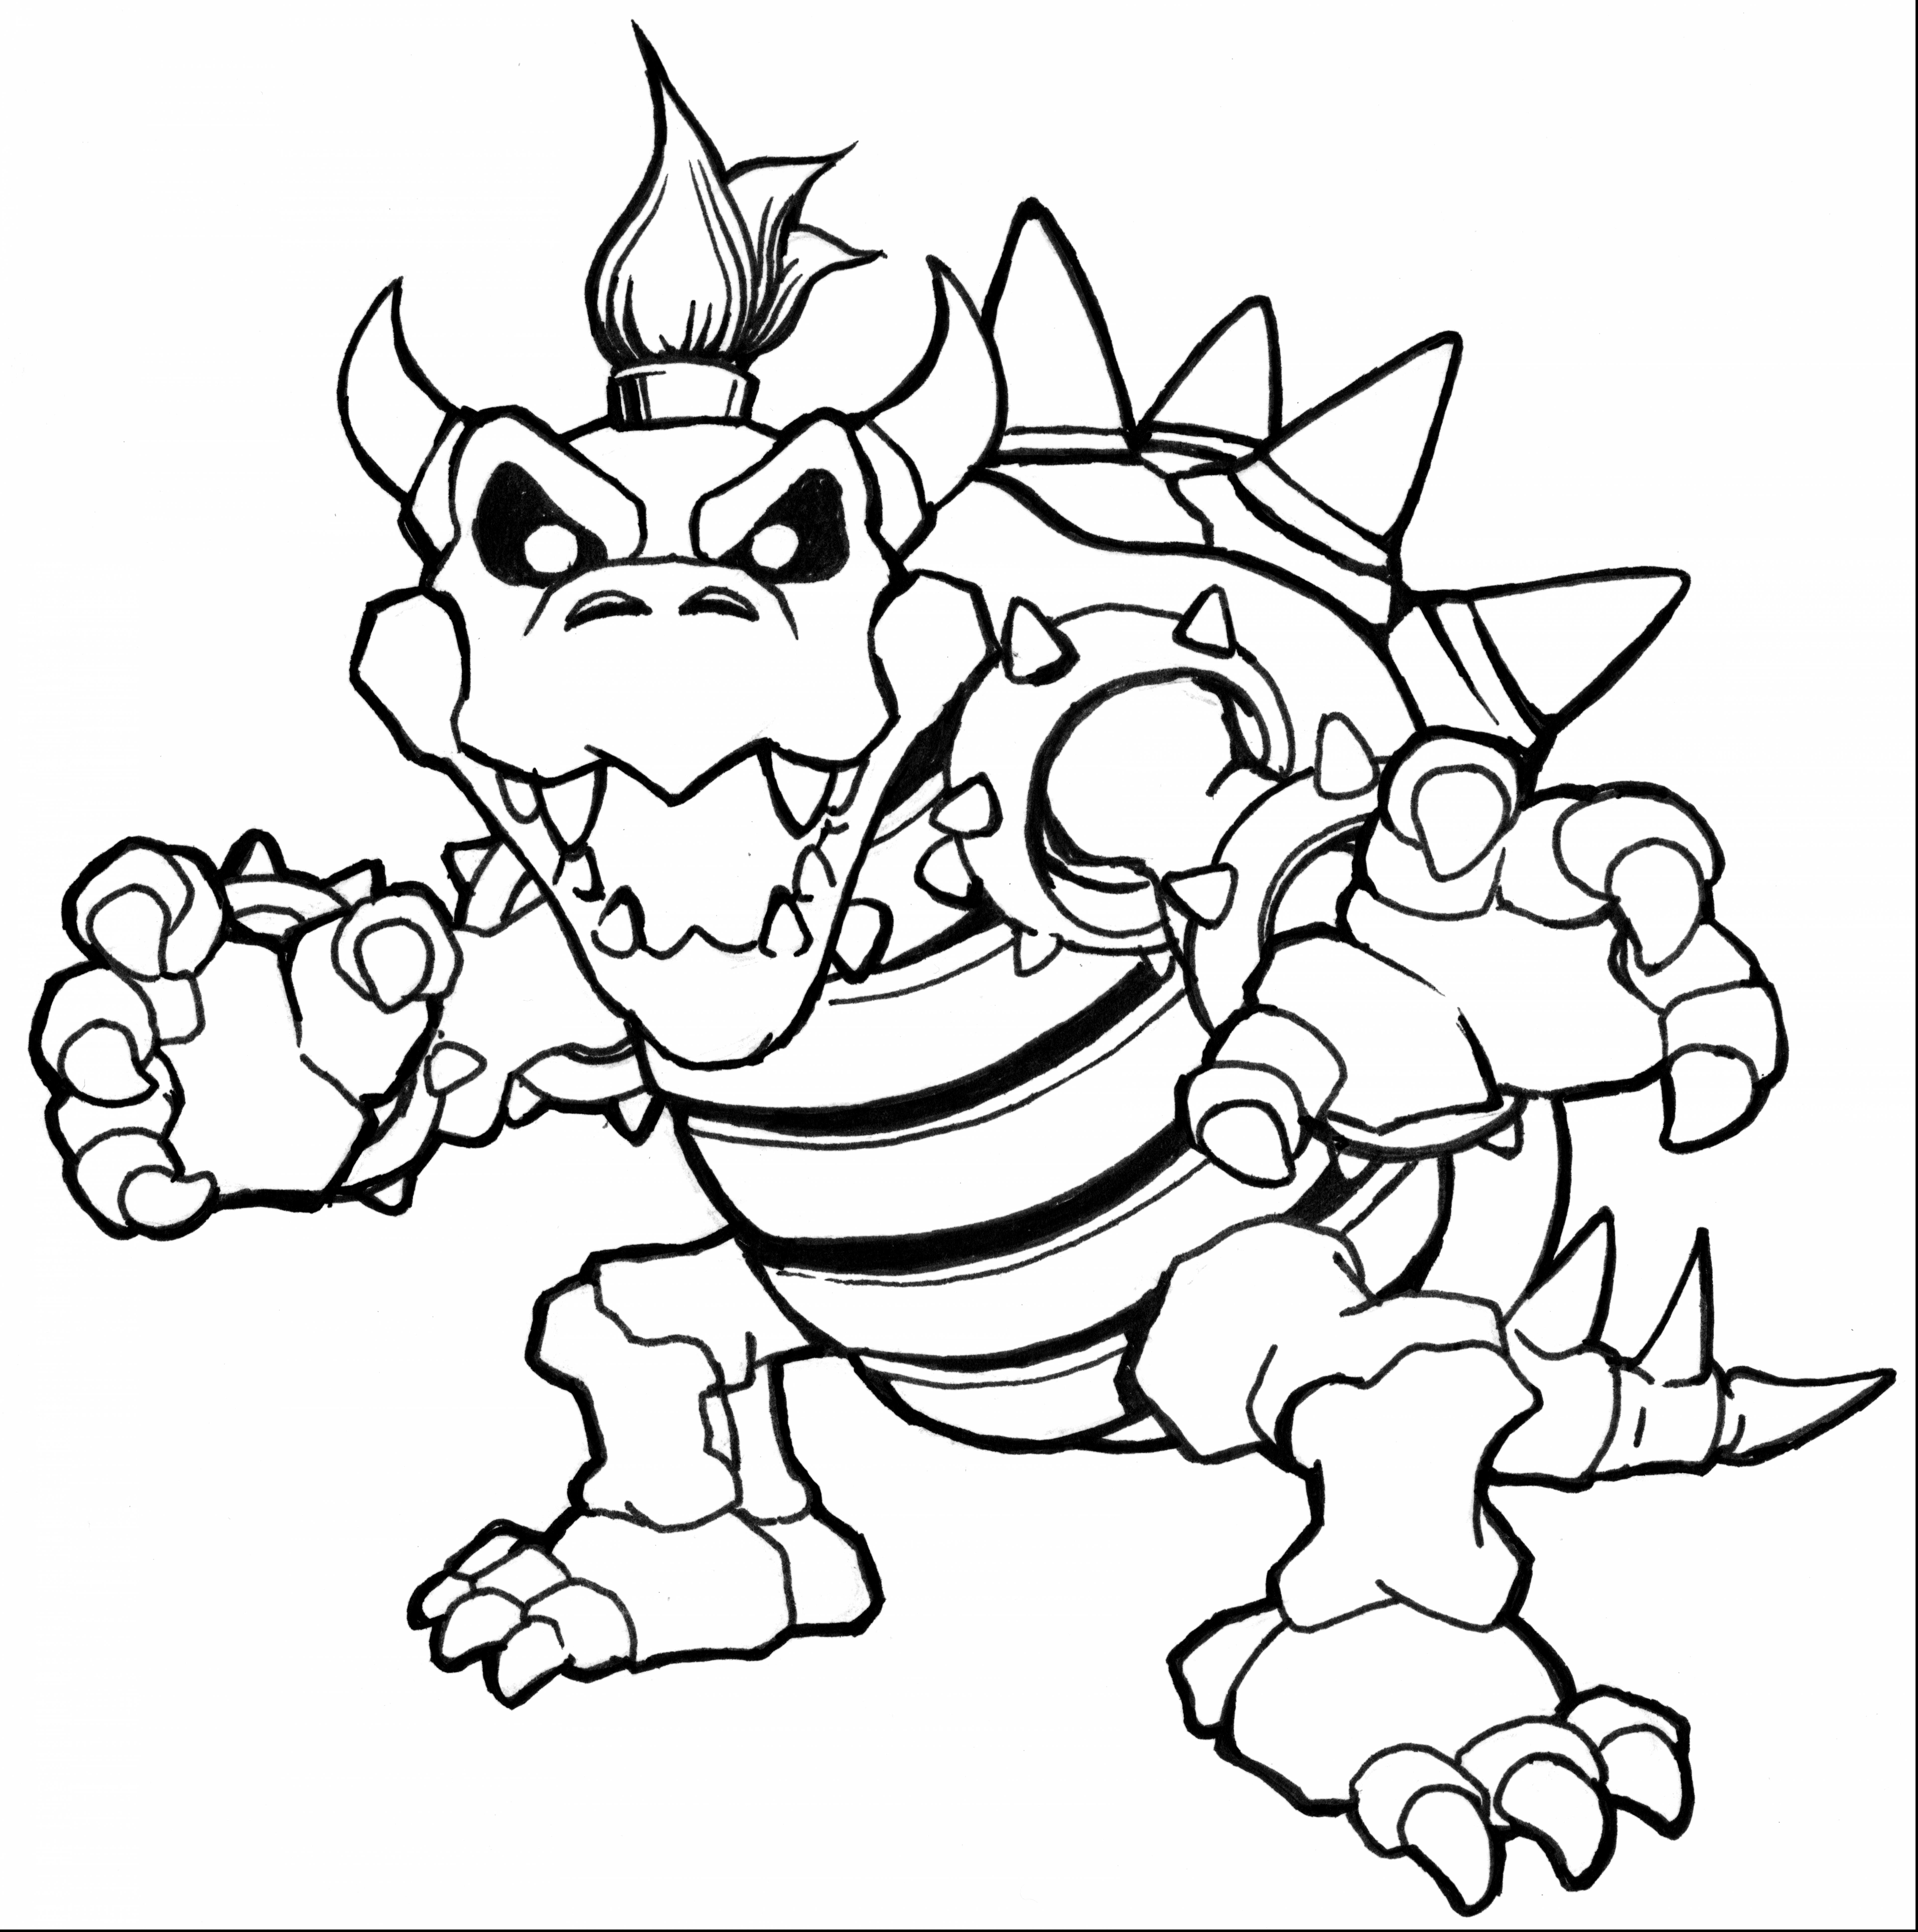 free printable super mario coloring pages 3 super mario coloring pages gtgt disney coloring pages mario coloring pages free printable super